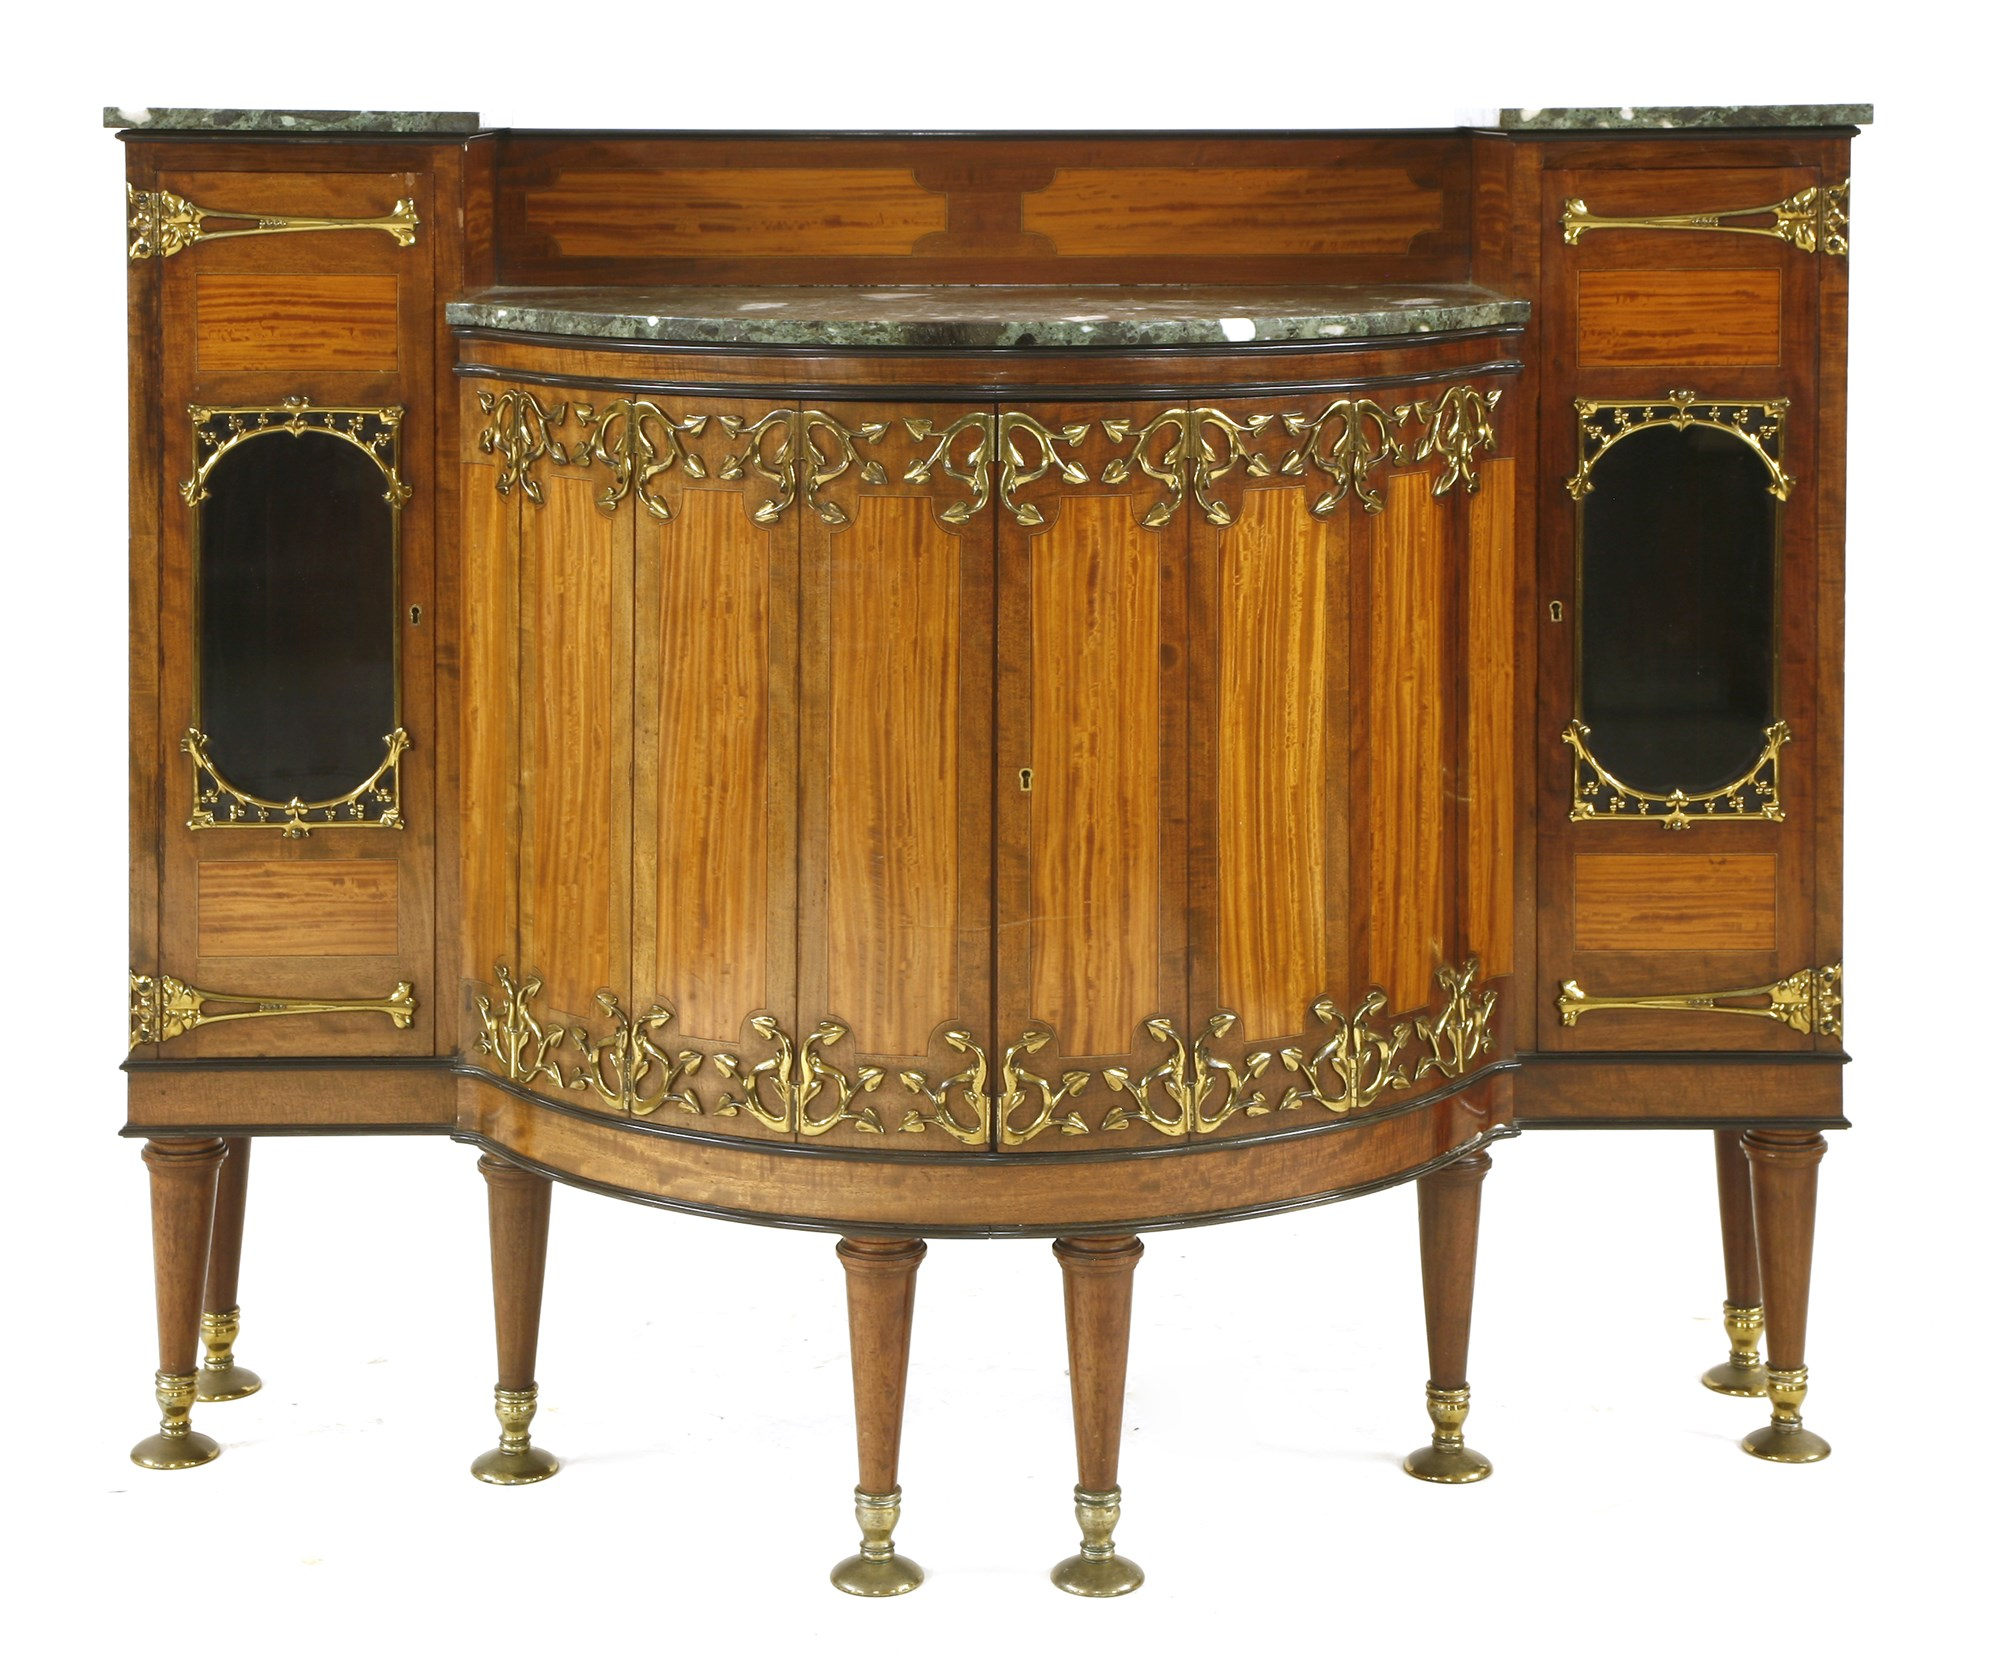 This cabinet - one of few to appear on the market - by William Arthur Smith Benson (1854-1924) will be offered for sale with an estimate of £10,000-15,000